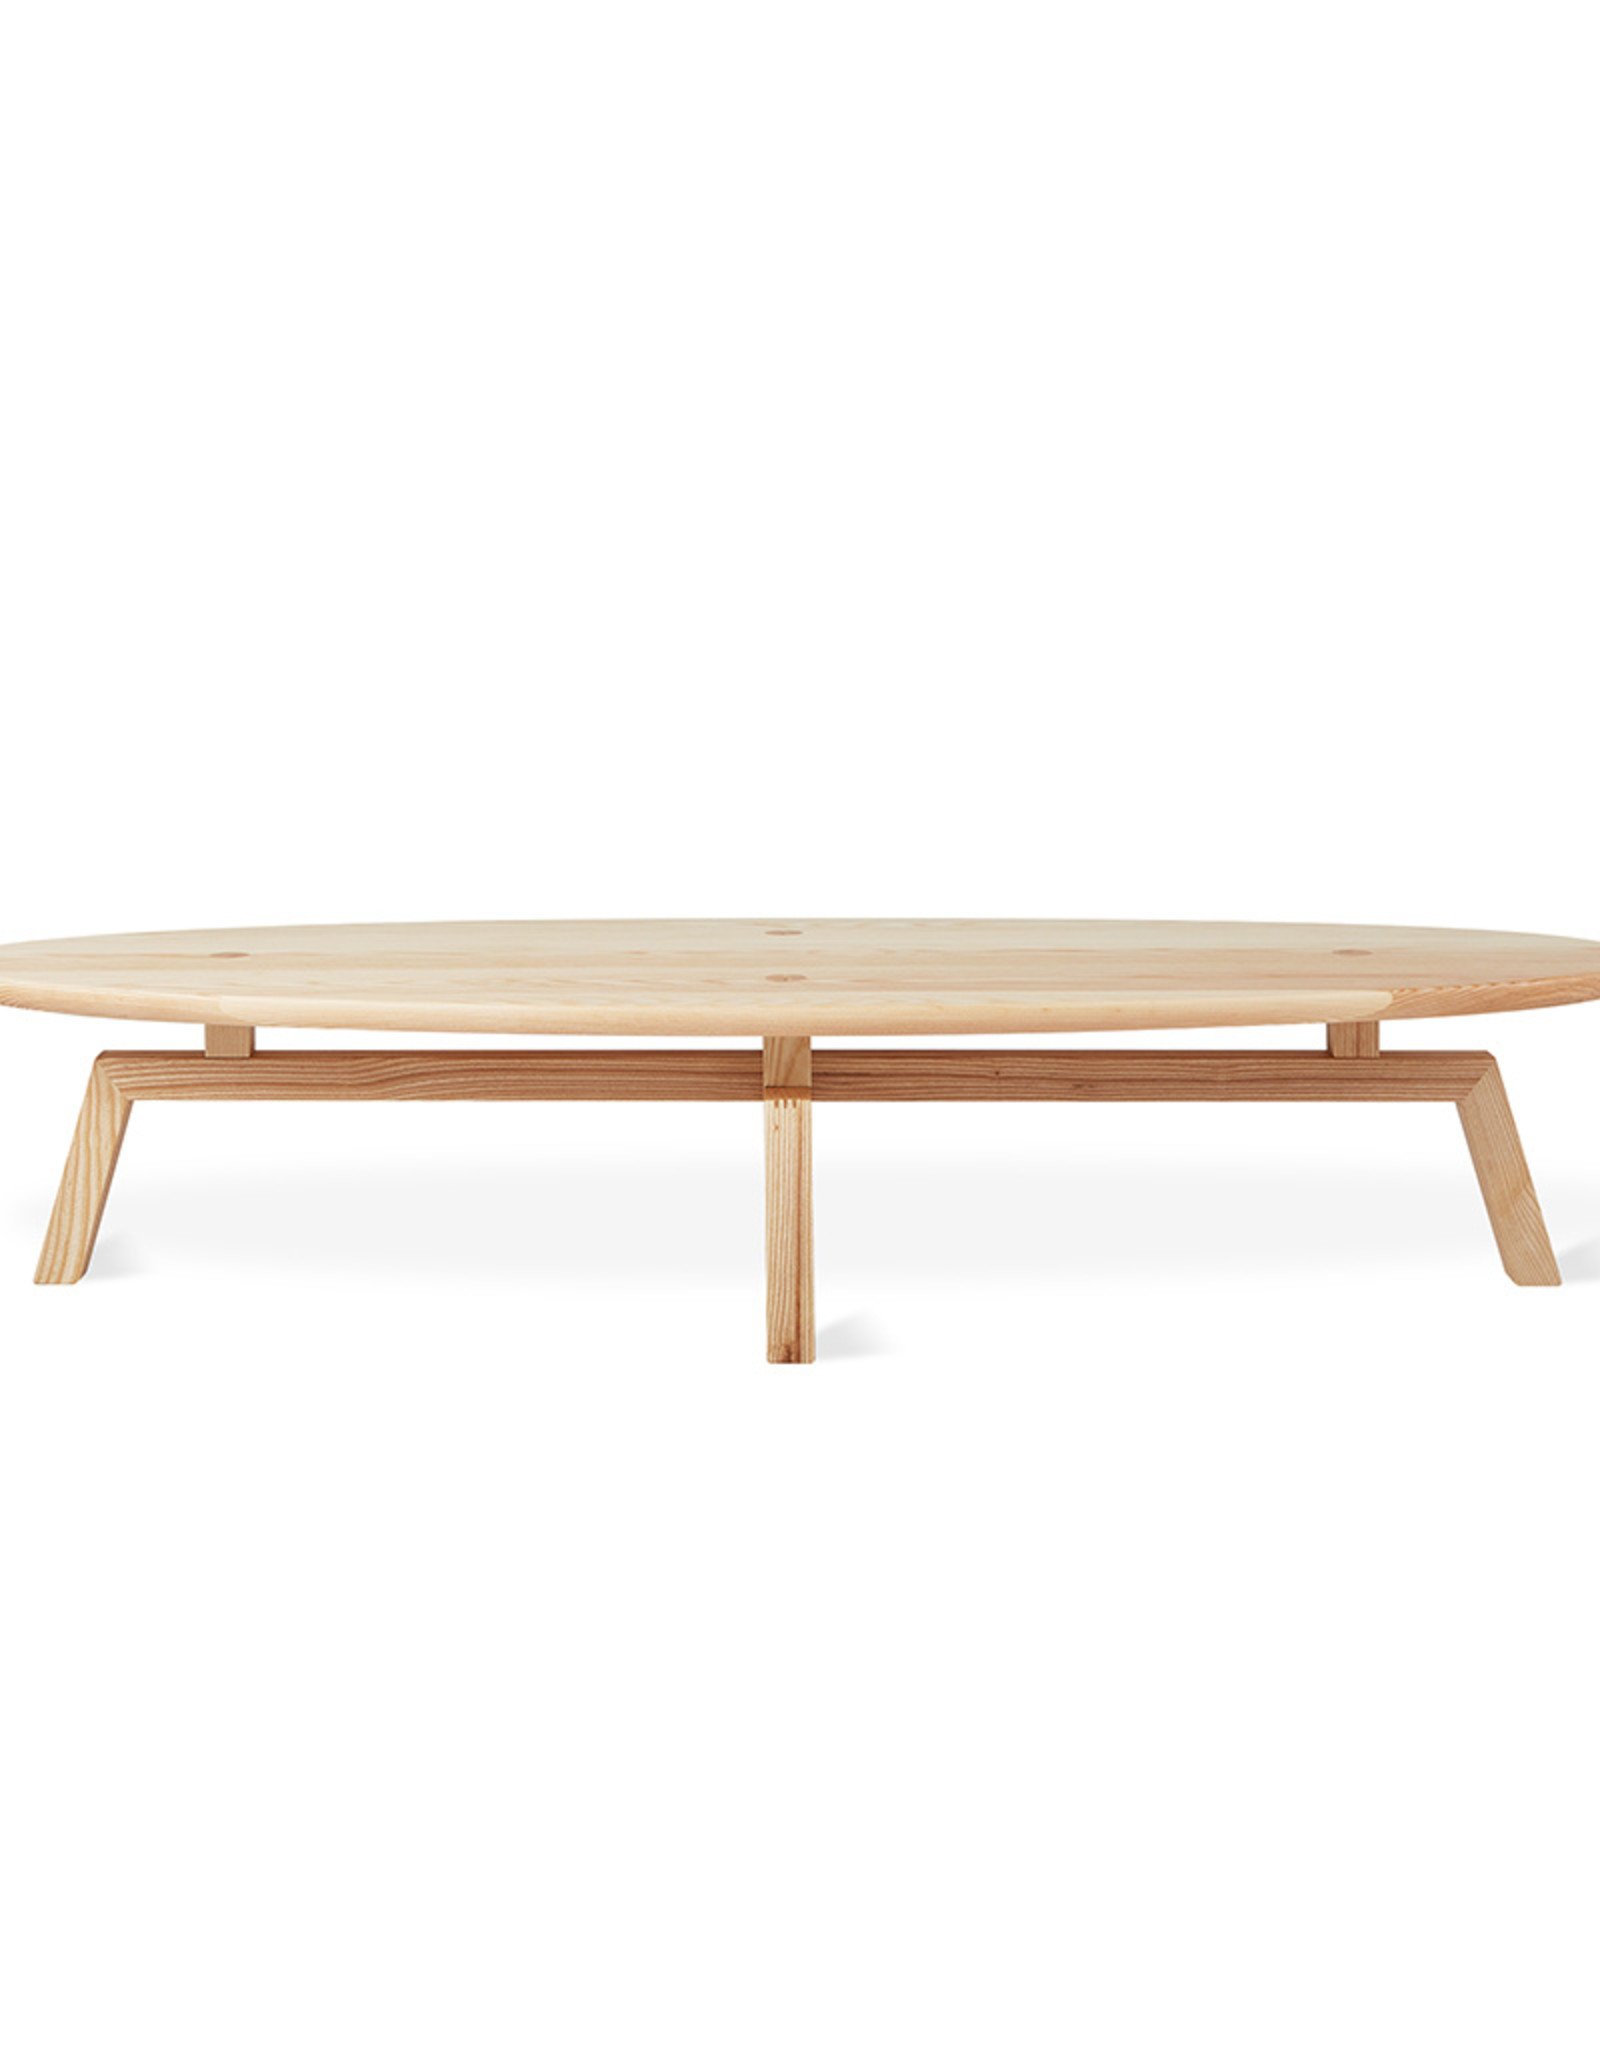 Gus* Modern Solana Oval Coffee Table